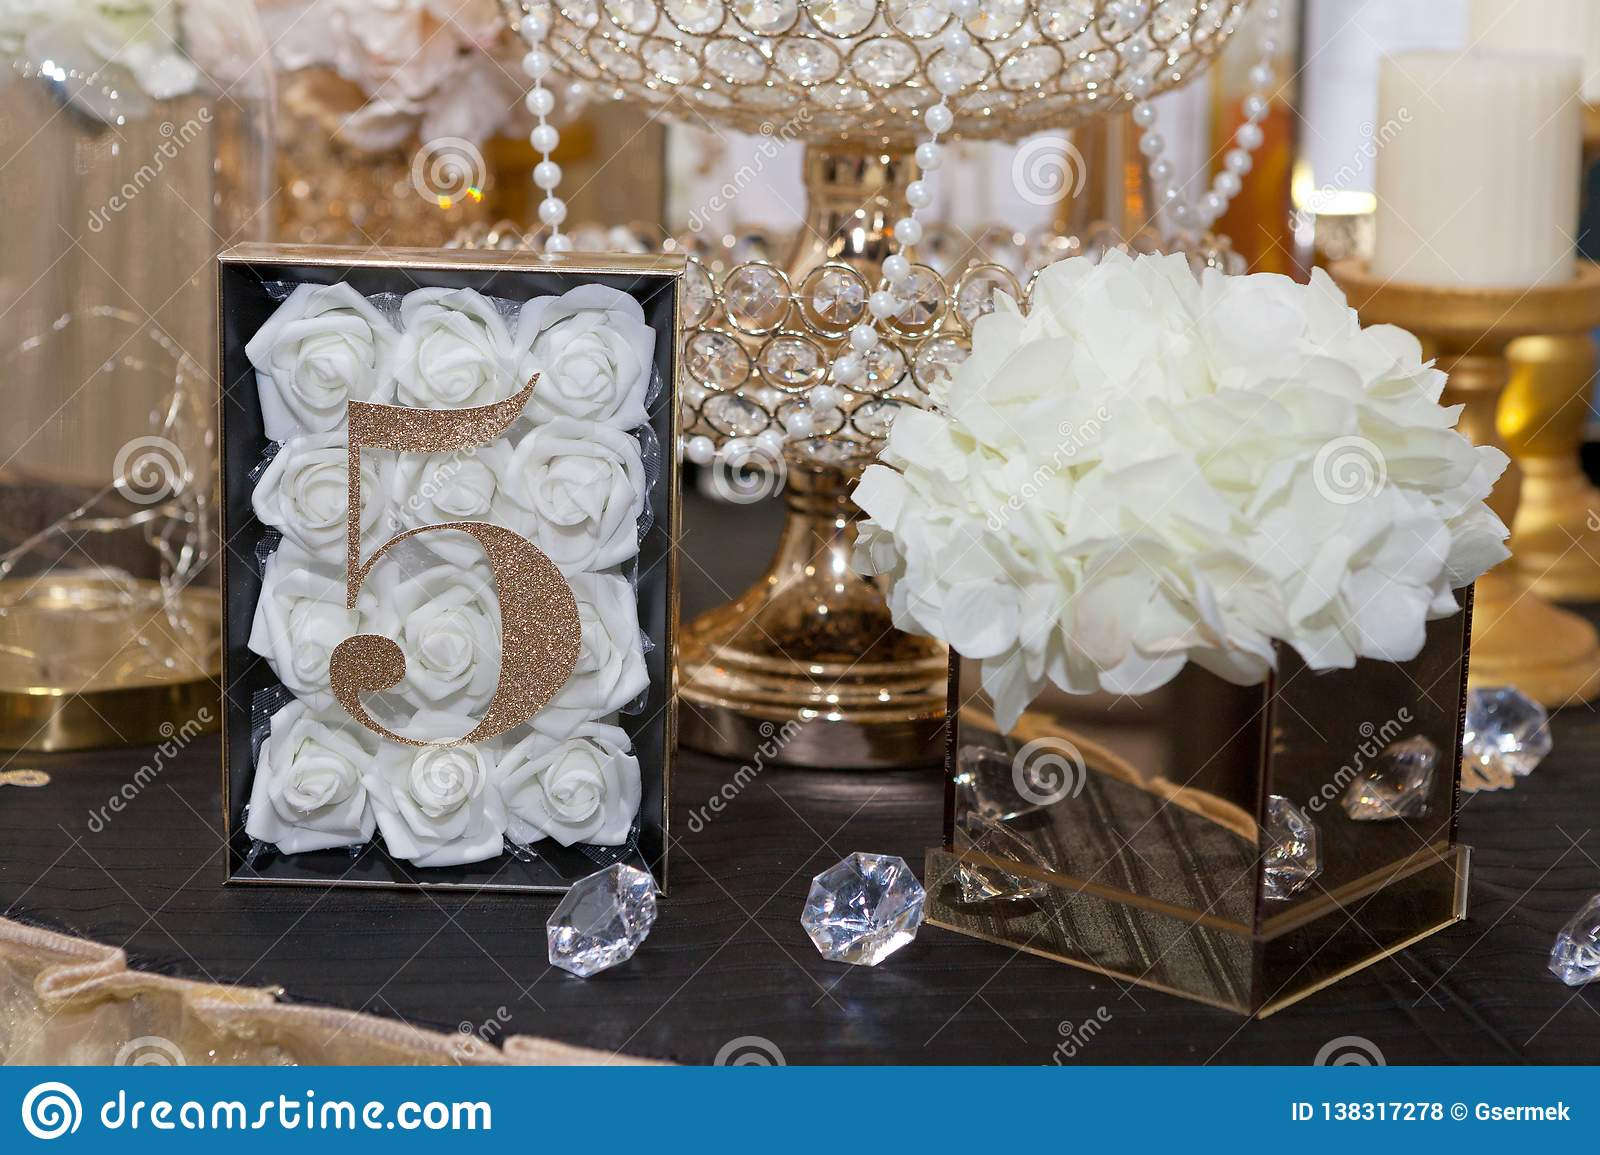 Five at table for guests on wedding dinner